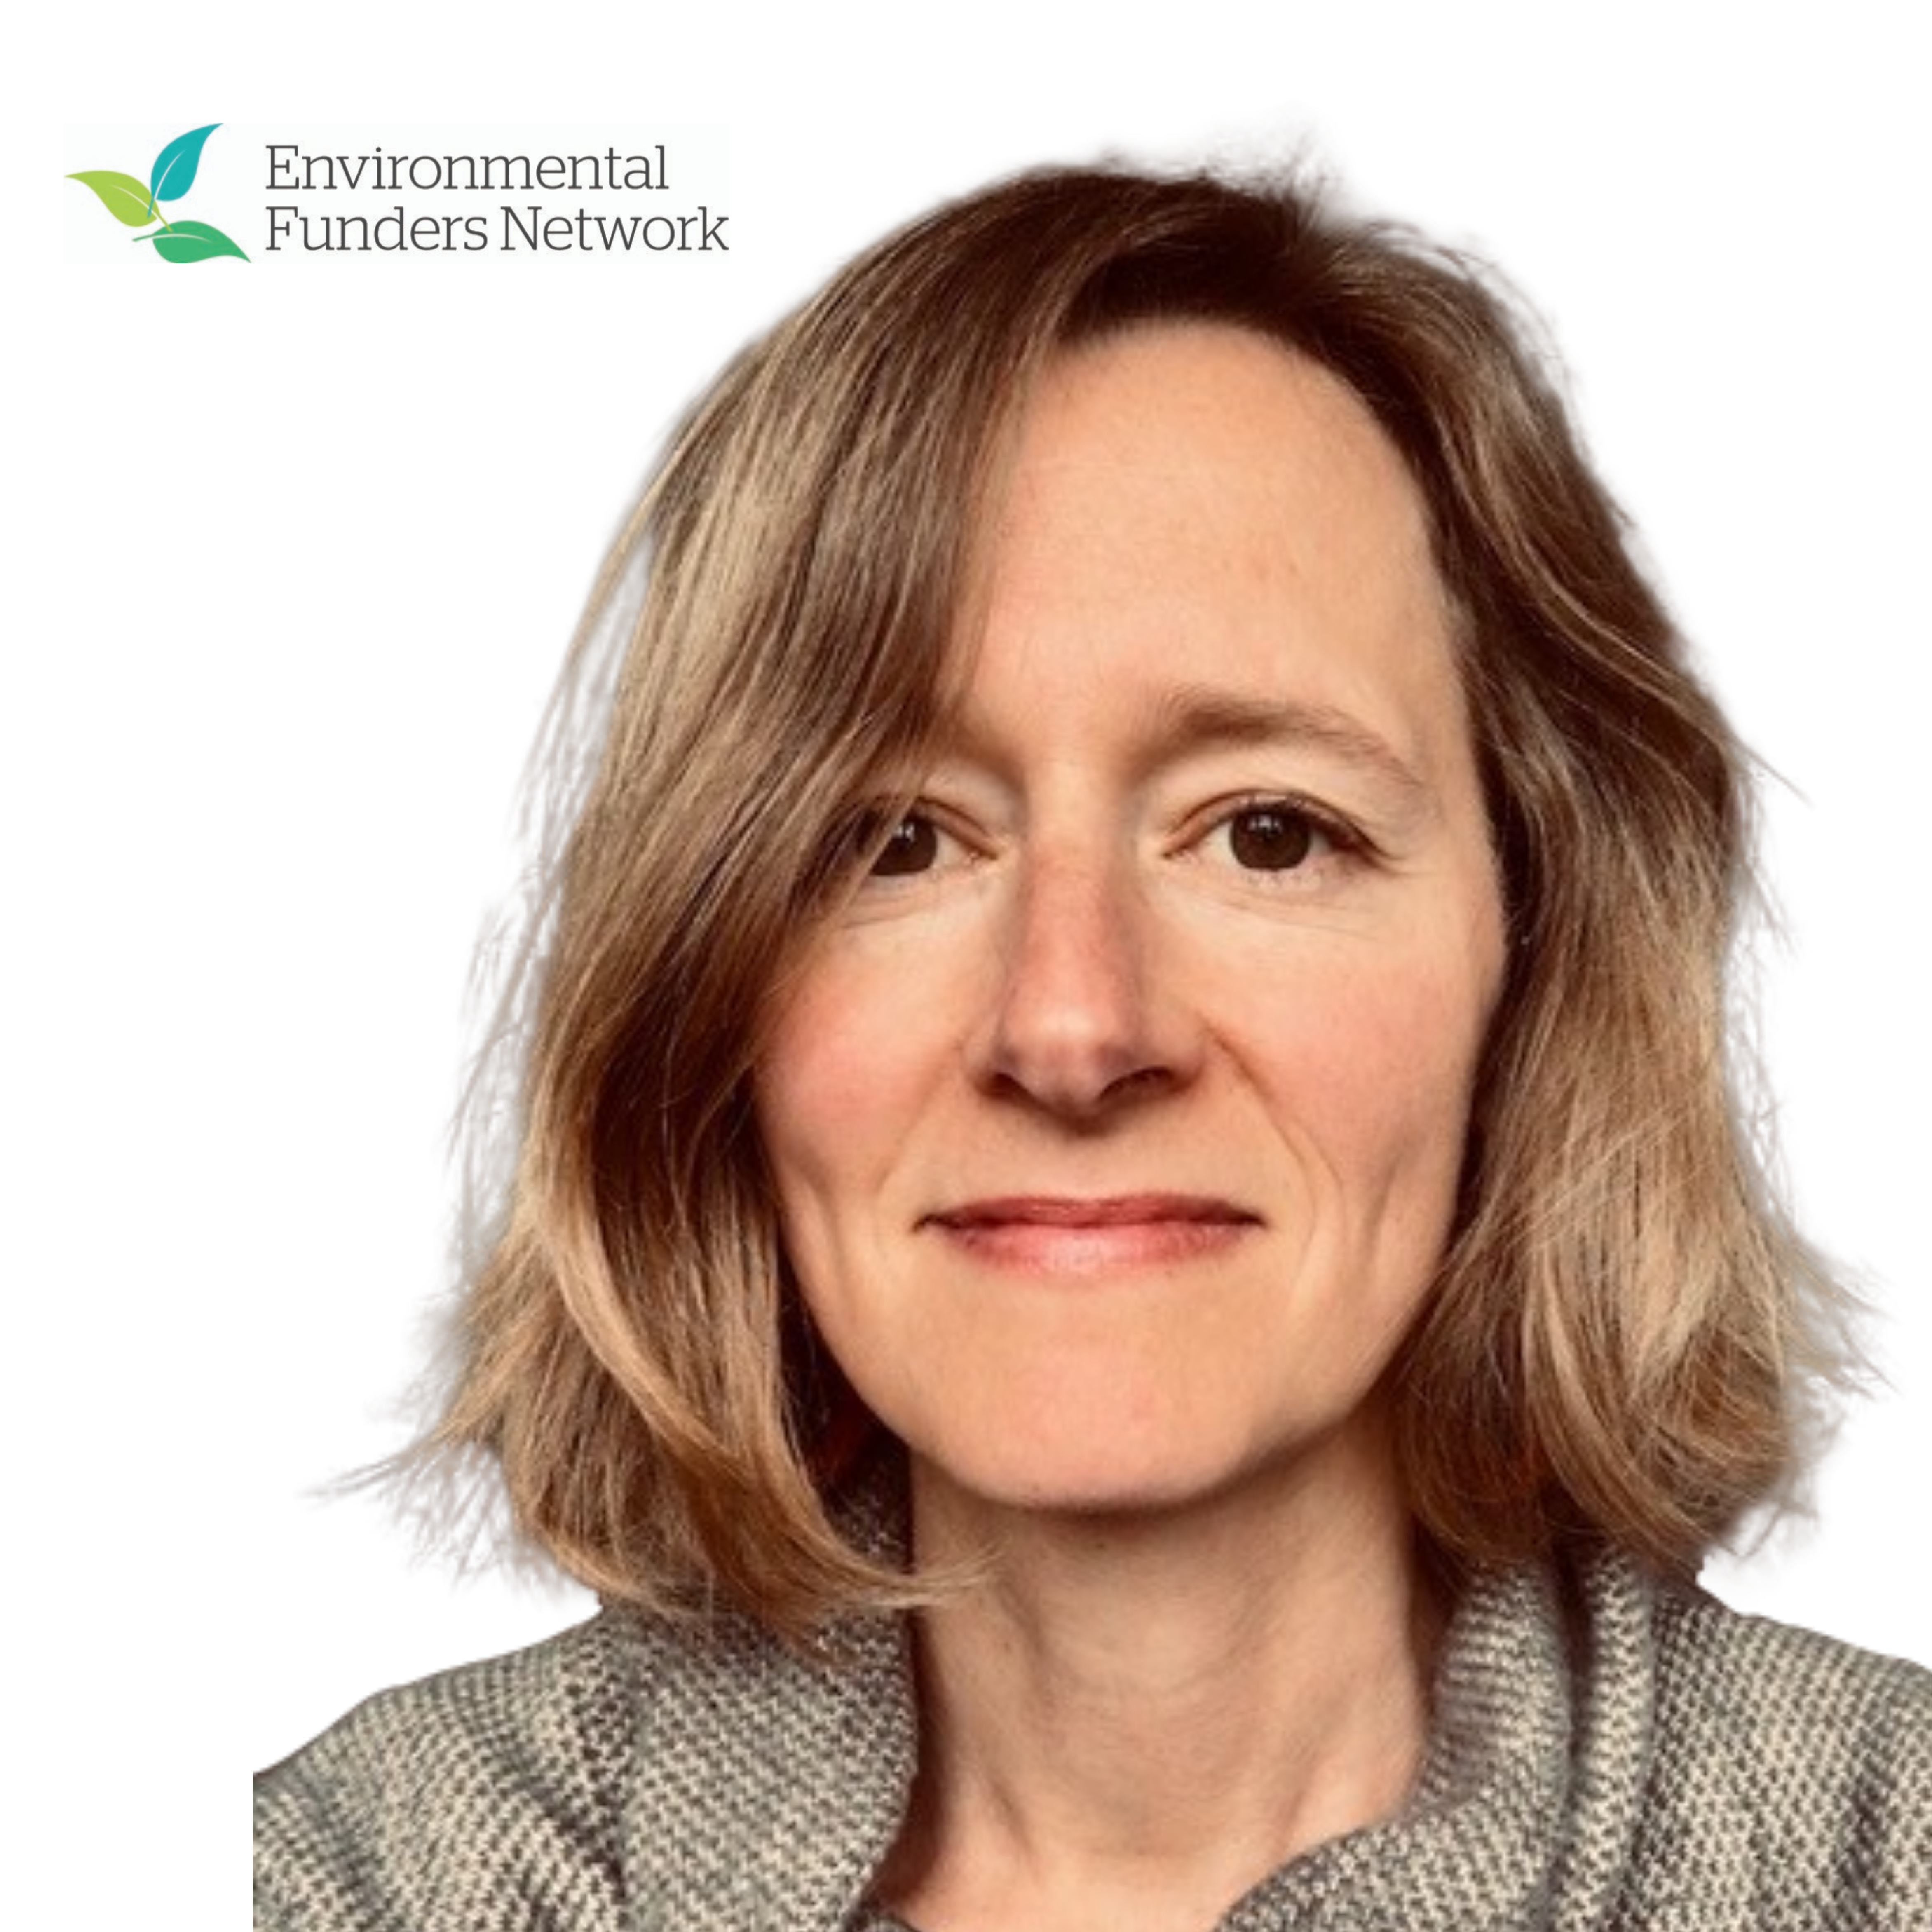 Making the most of Key Policy Moments: UK Environmental Funders at Work